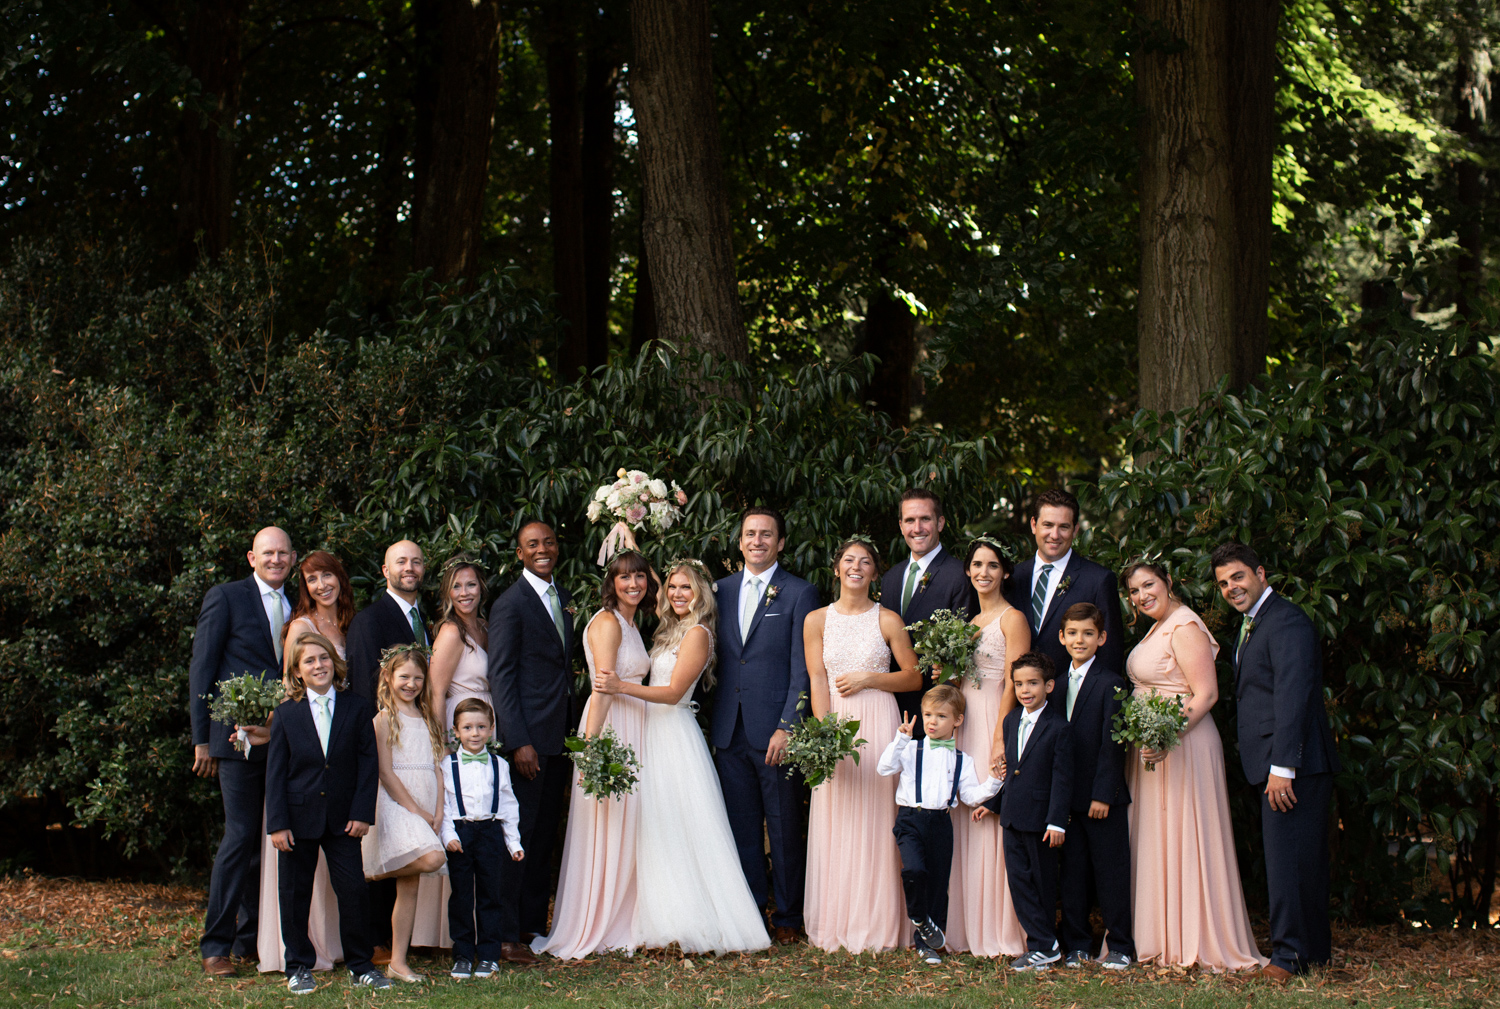 Jessica + Scott_Olivia_Ashton_Photography-37-63.jpg